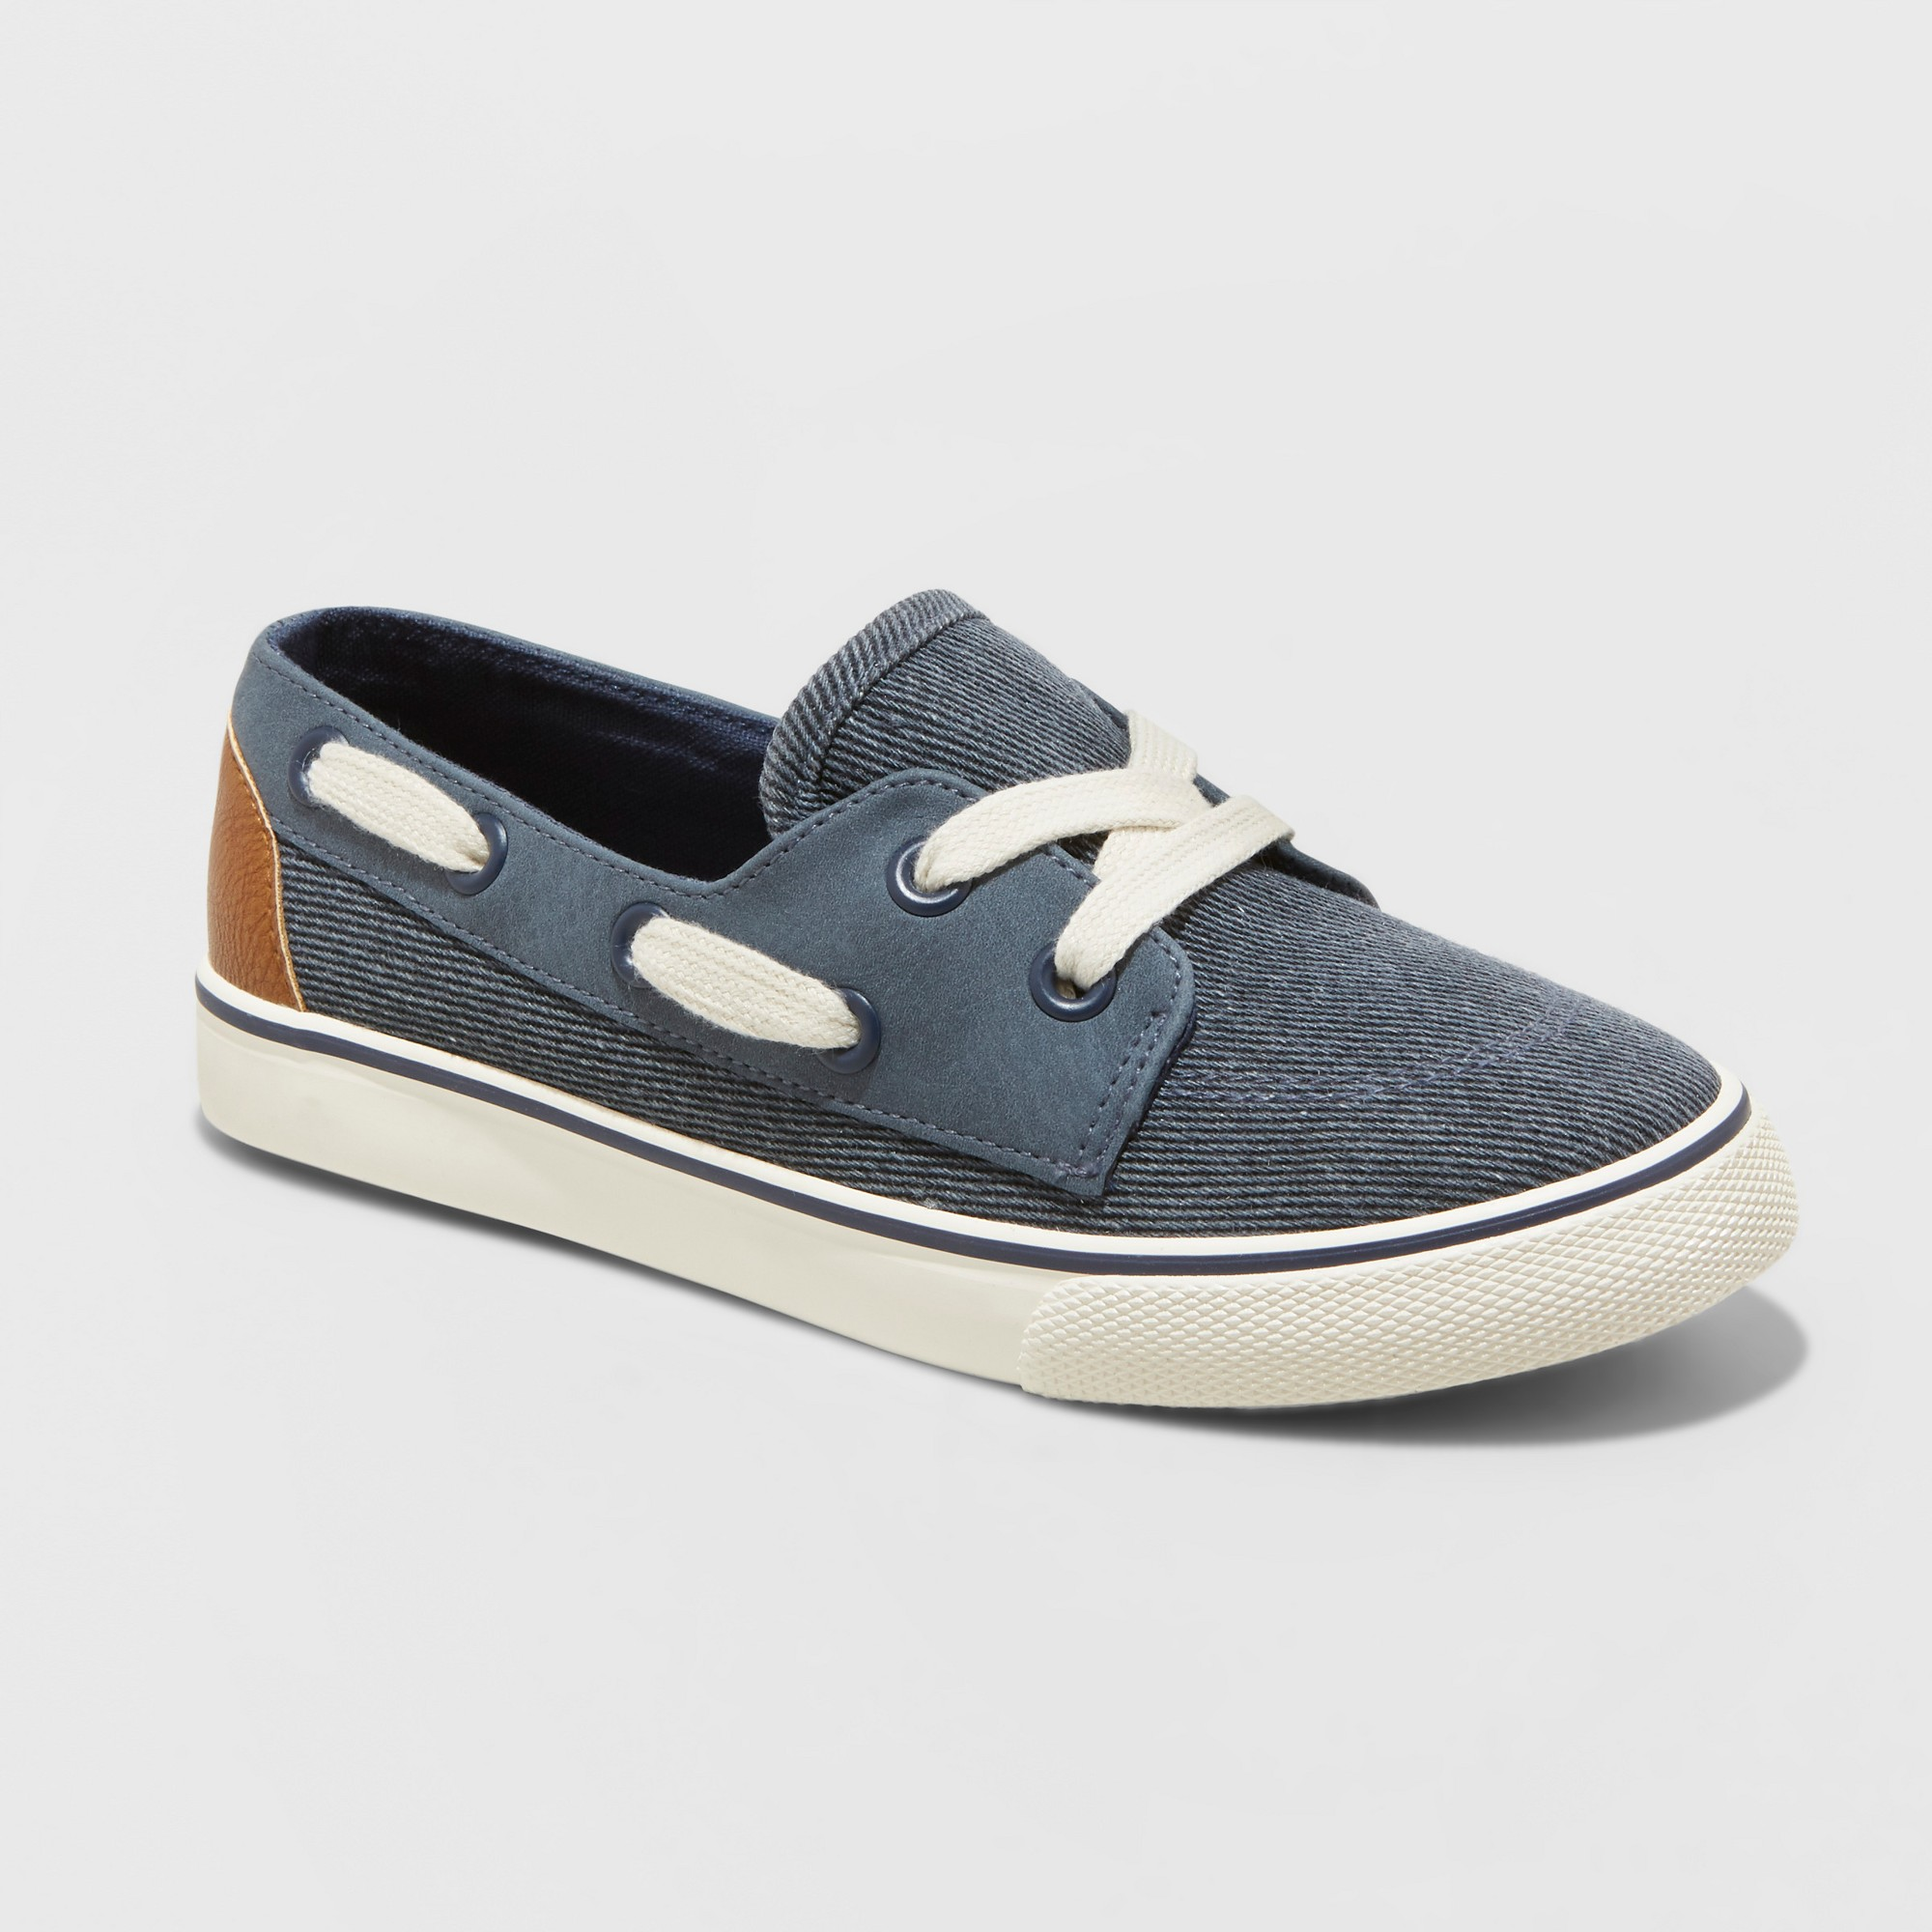 ad52806a70e3 Boys  Abe Boat Shoe - Cat   Jack Blue 1